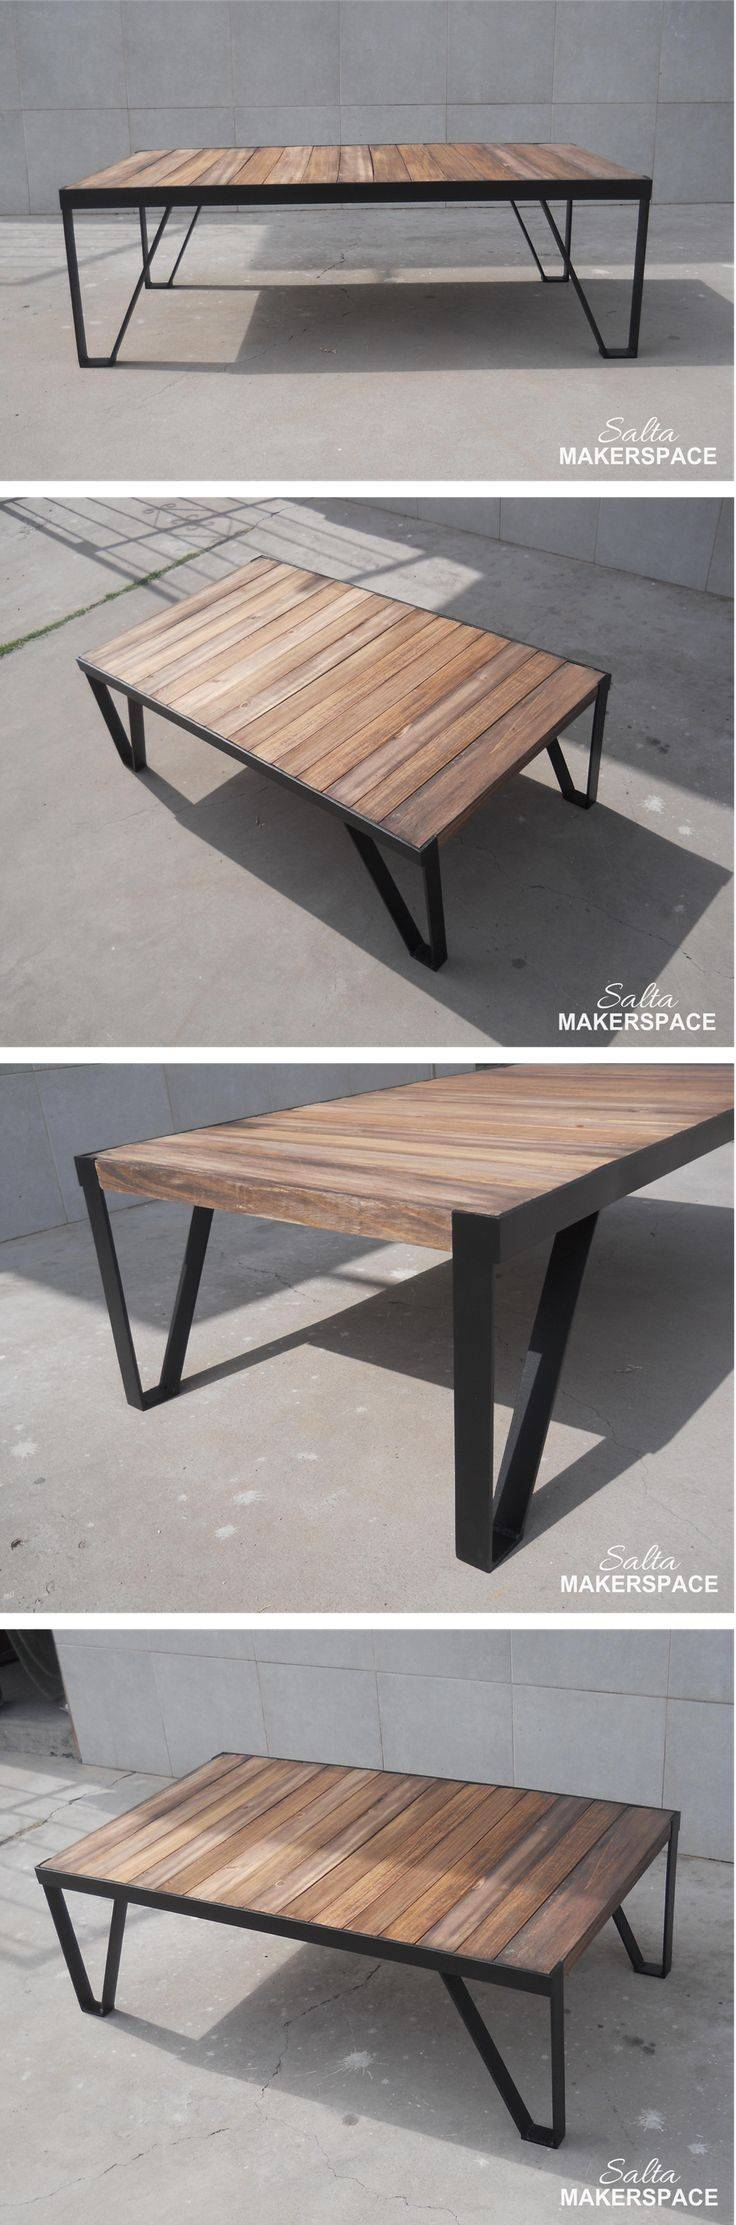 best 20 industrial coffee tables ideas on pinterest coffee throughout coffee table industrial style